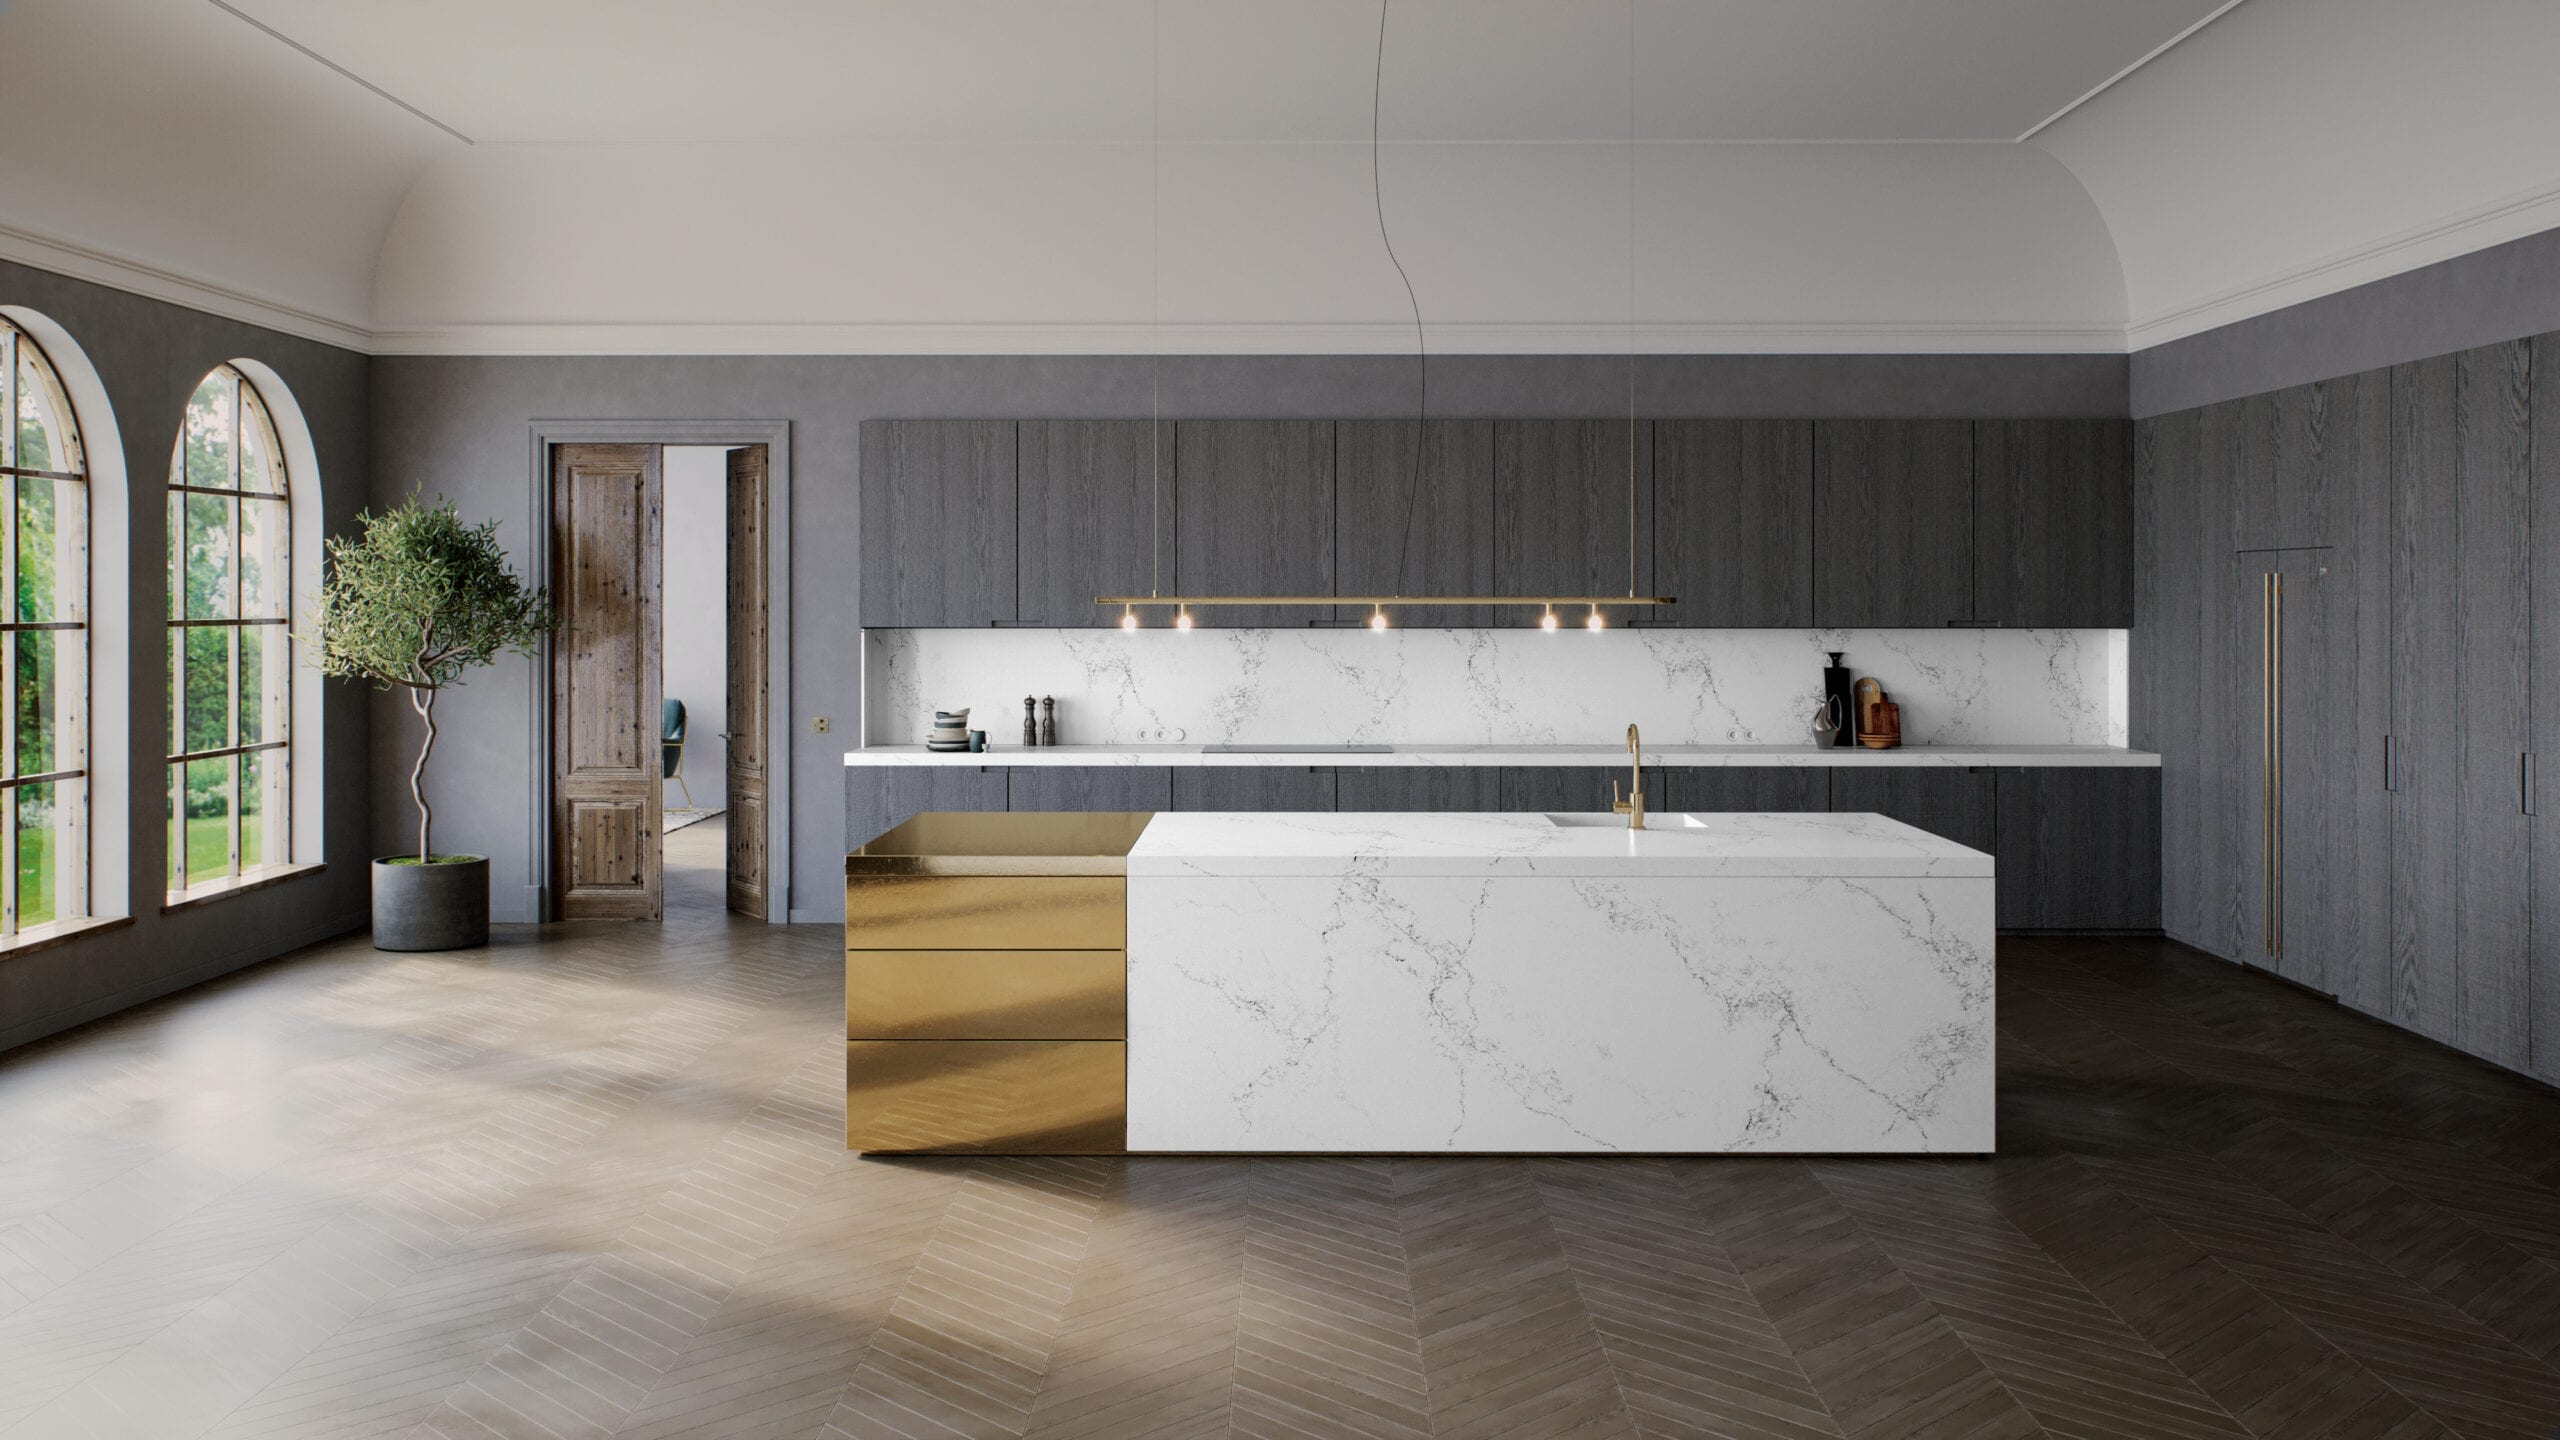 Affordable Quartz Counter tops in Tampa kitchen cabinets brandon